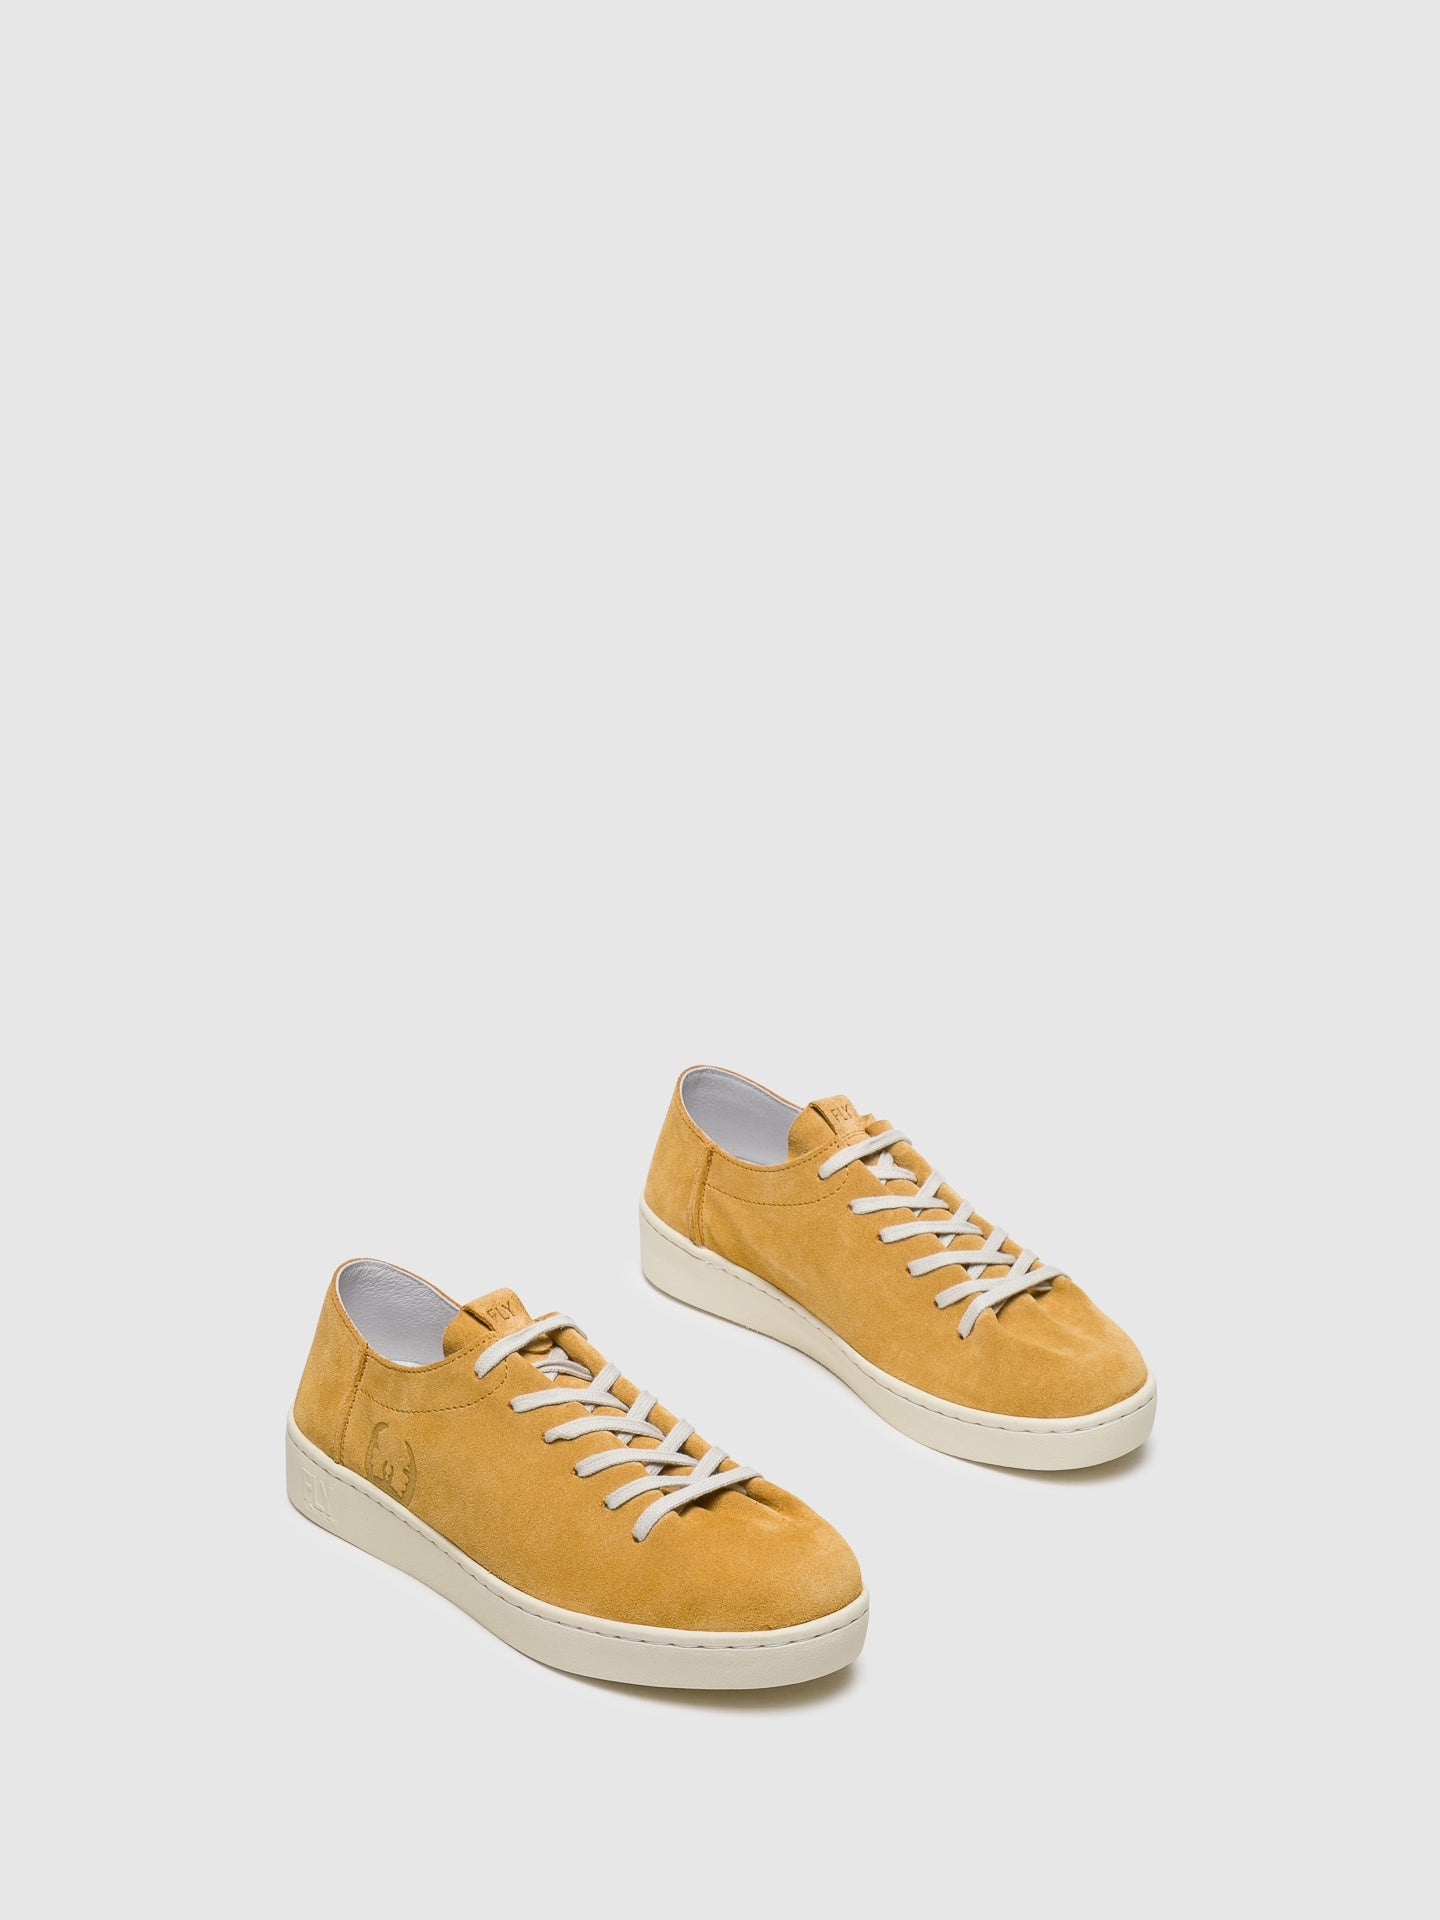 Fly London Yellow Lace-up Trainers